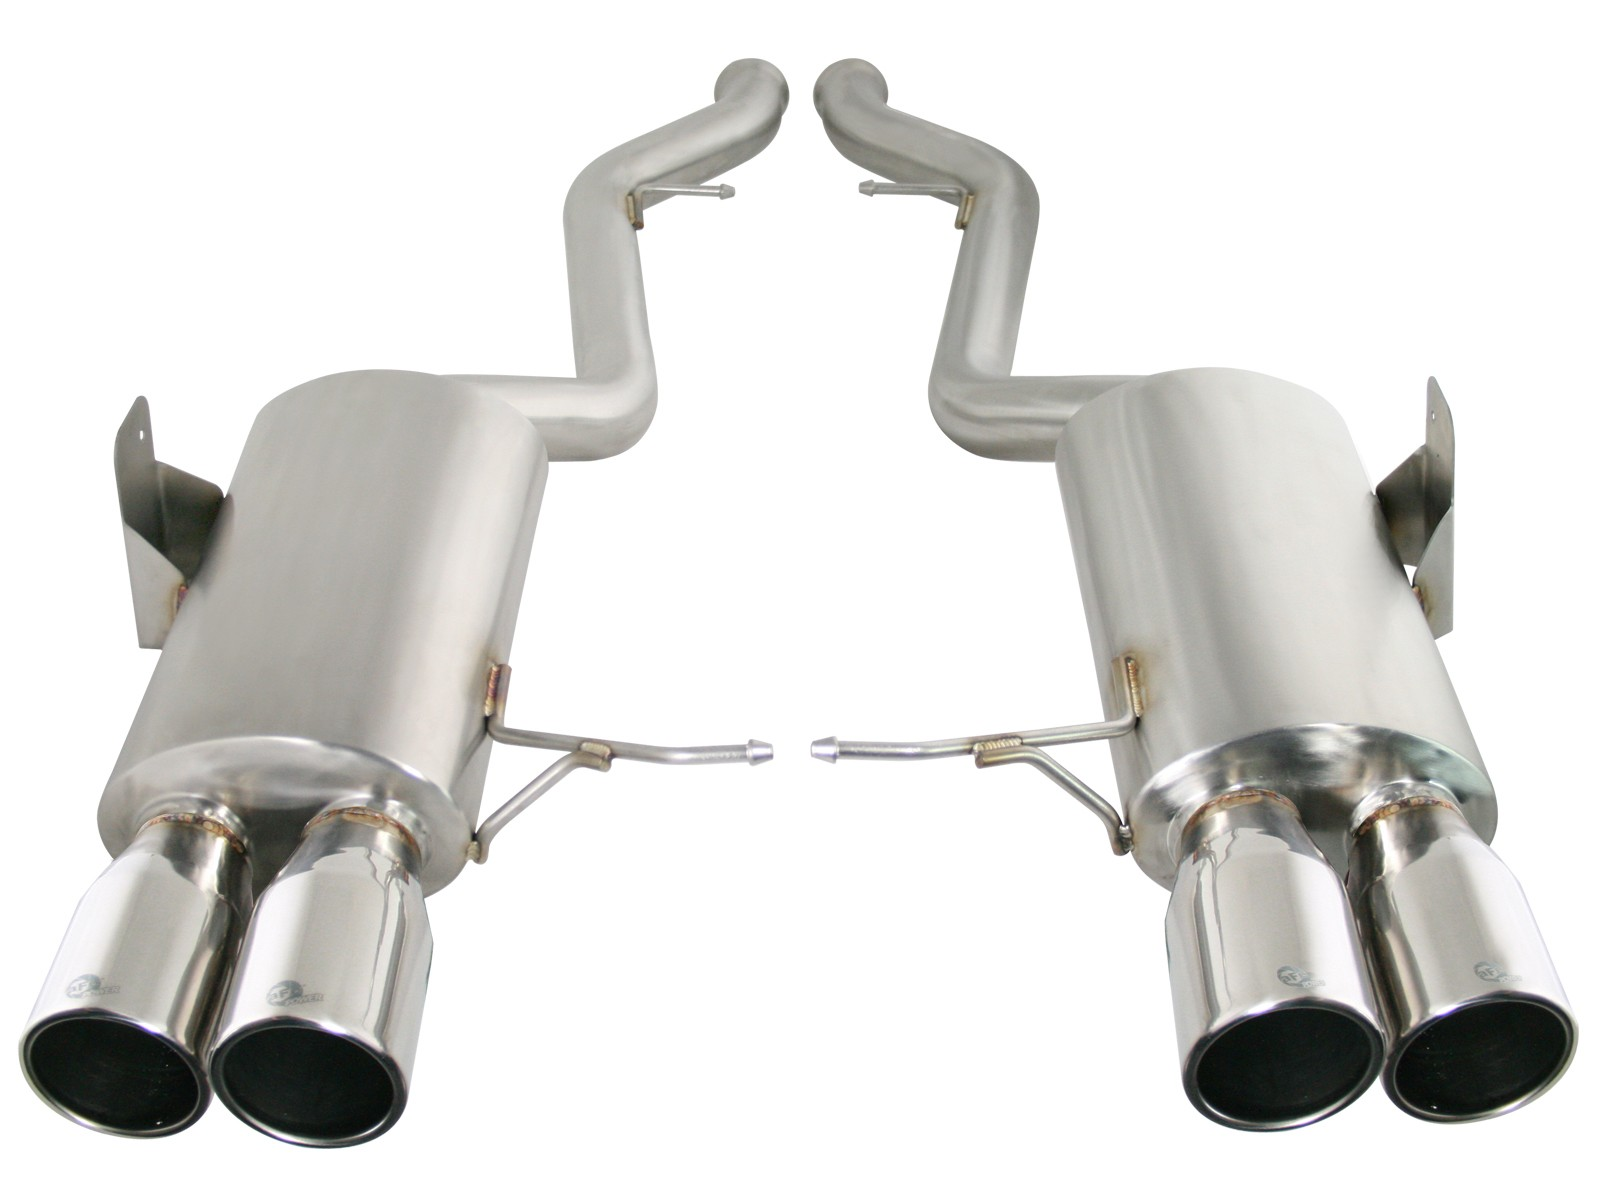 "aFe POWER 49-36311-P MACH Force-Xp 2-1/2"" 304 Stainless Steel Cat-Back Exhaust System"